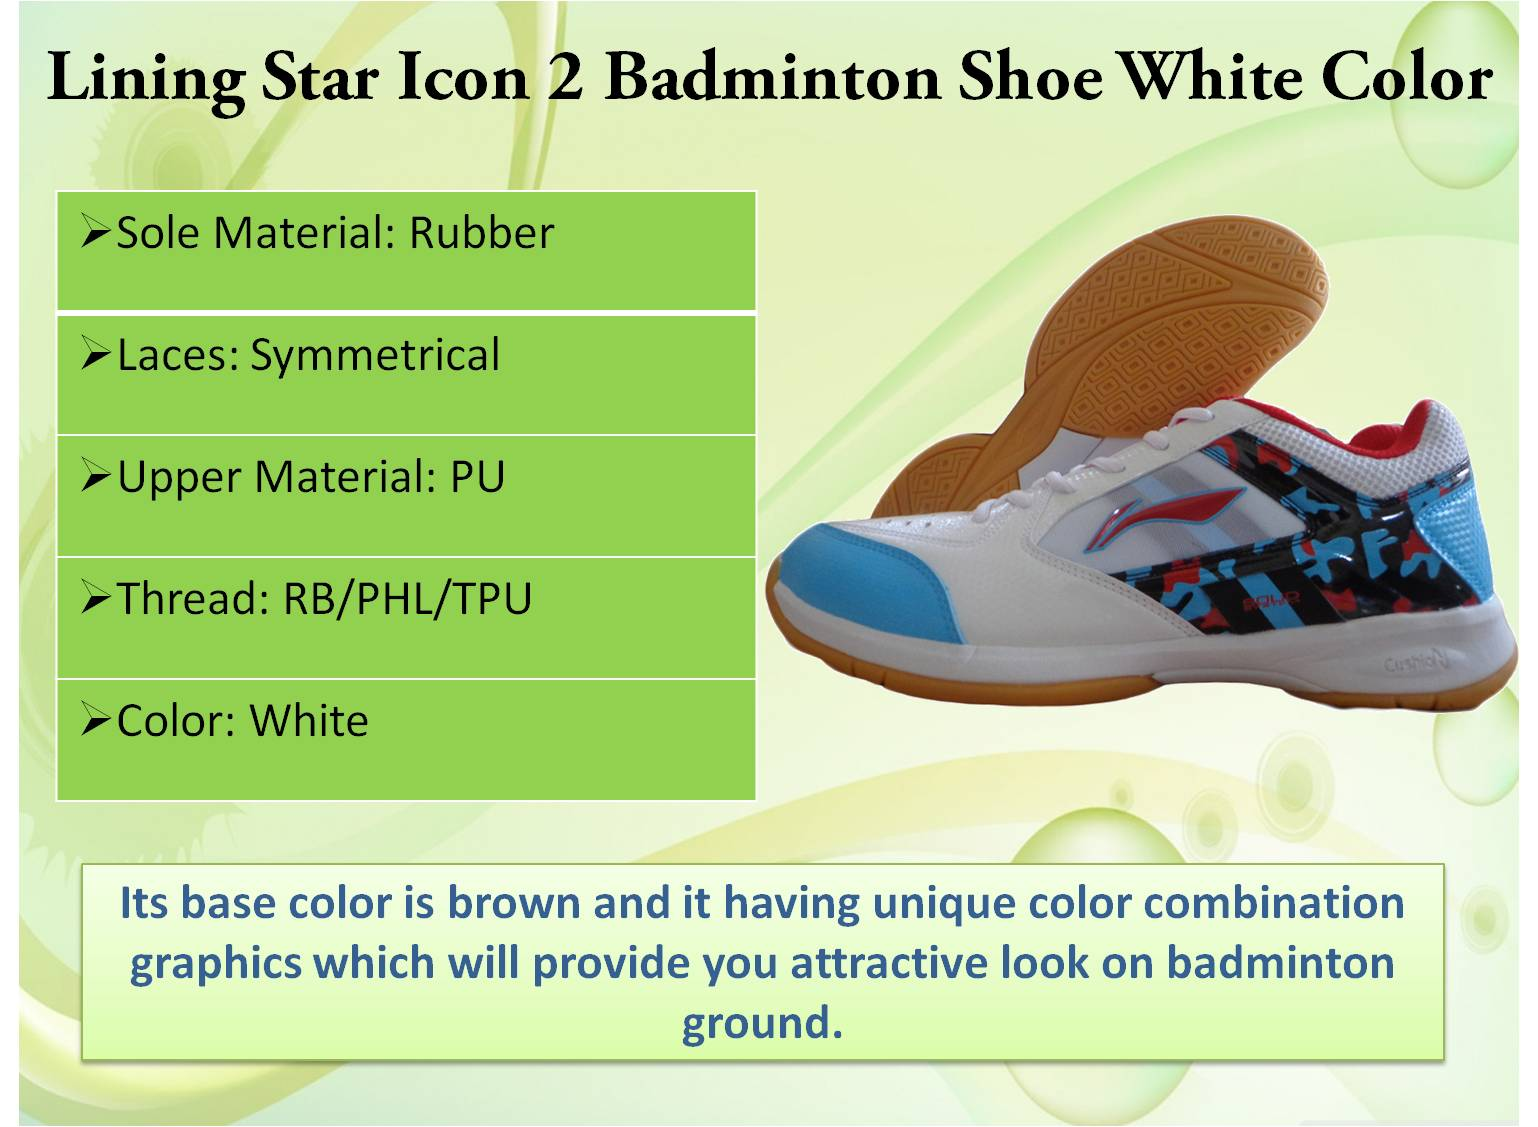 Lining star icon 2 badminton shoe in White color